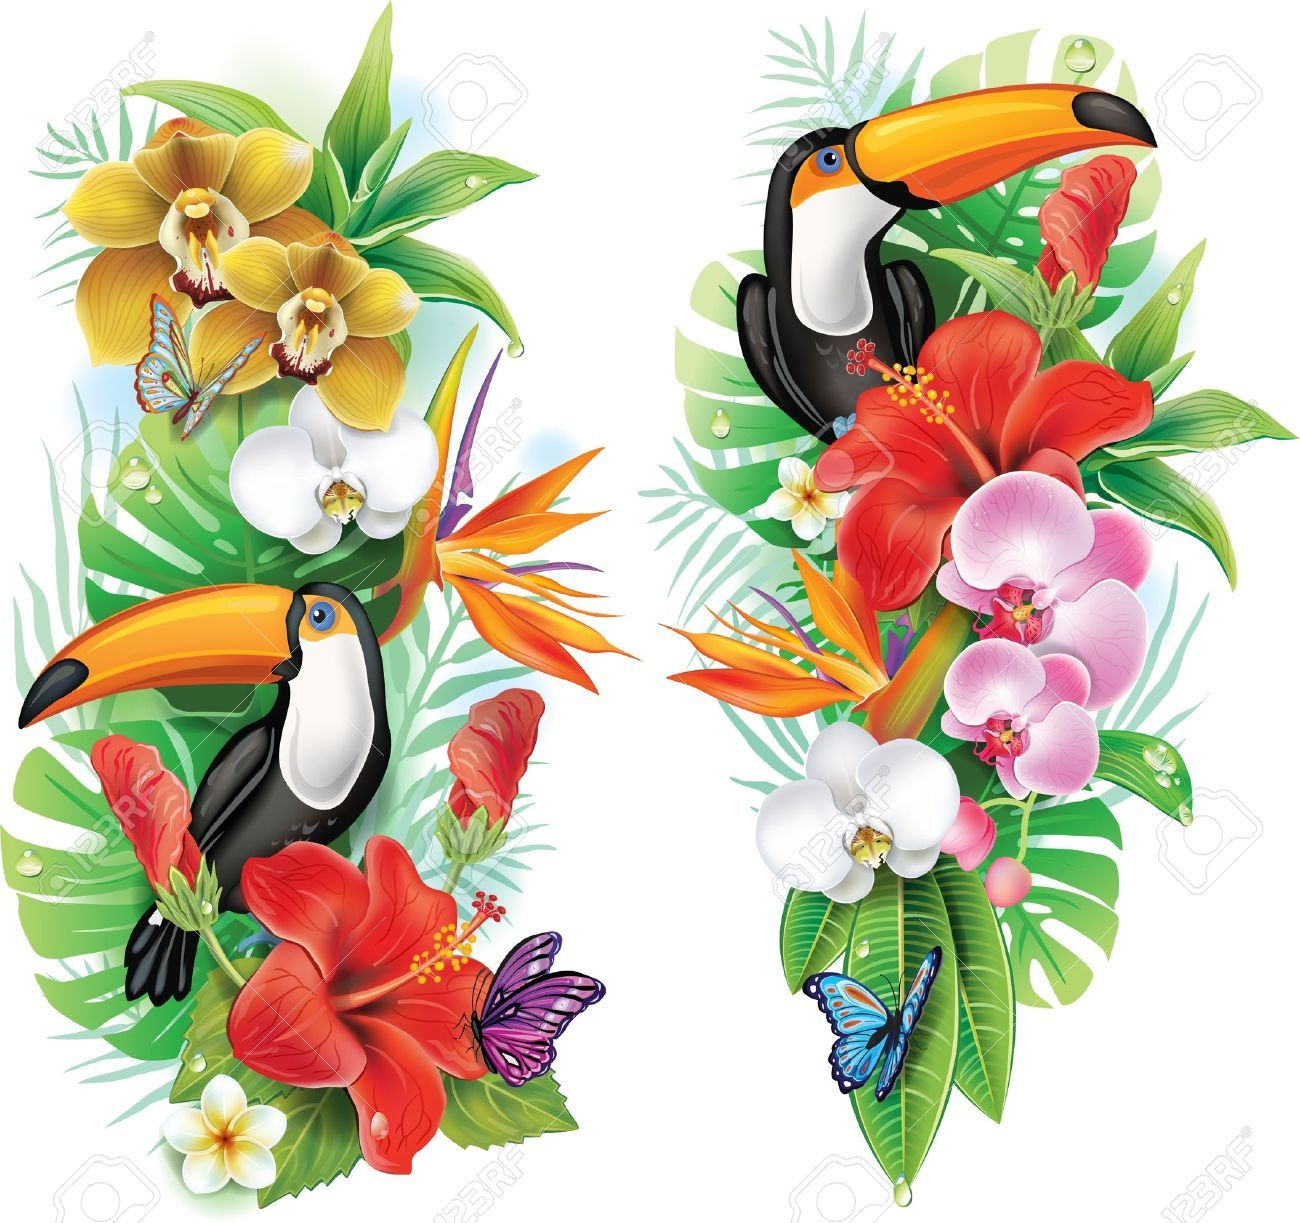 Stock Photo en 2019 | ☆ Illustrations ☆ | Fleur tropicale ...